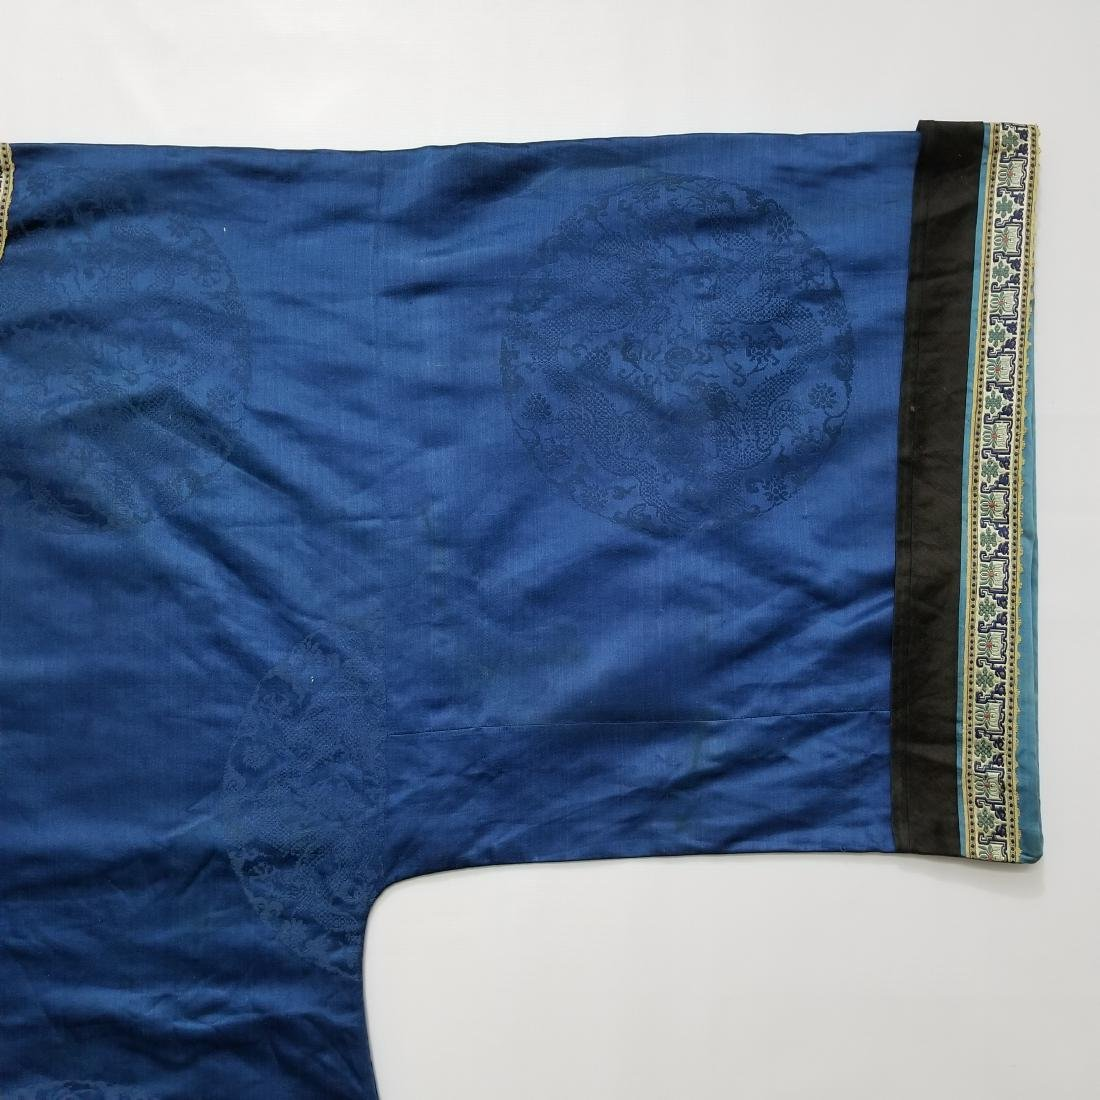 Antique Chinese Silk Robe with G T Marsh & Co. Stamp - 4